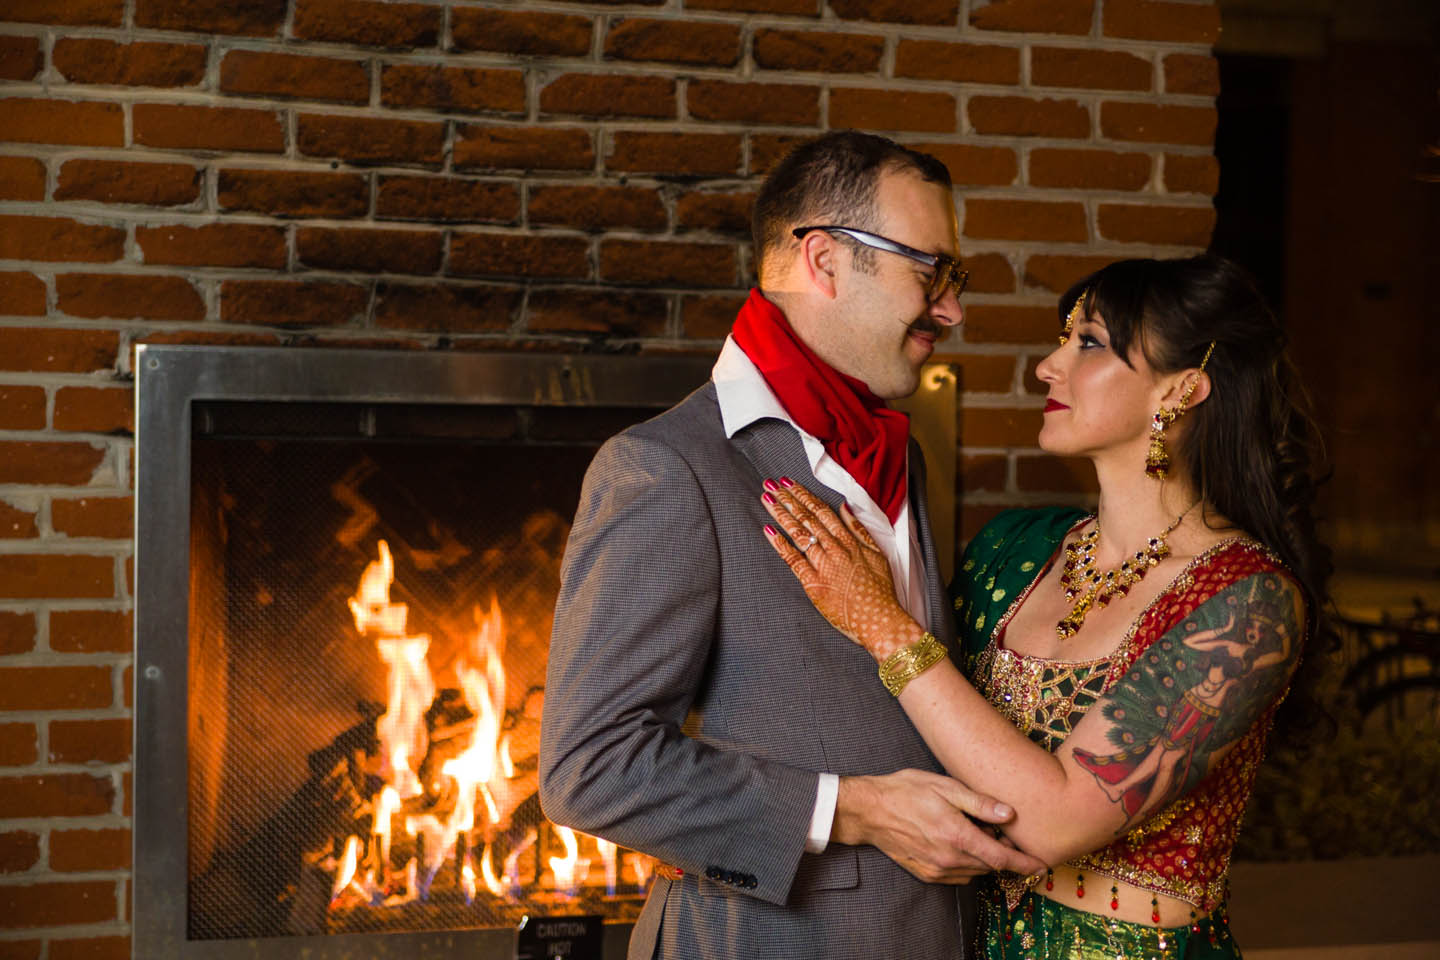 Braving the cold outside for wedding photography